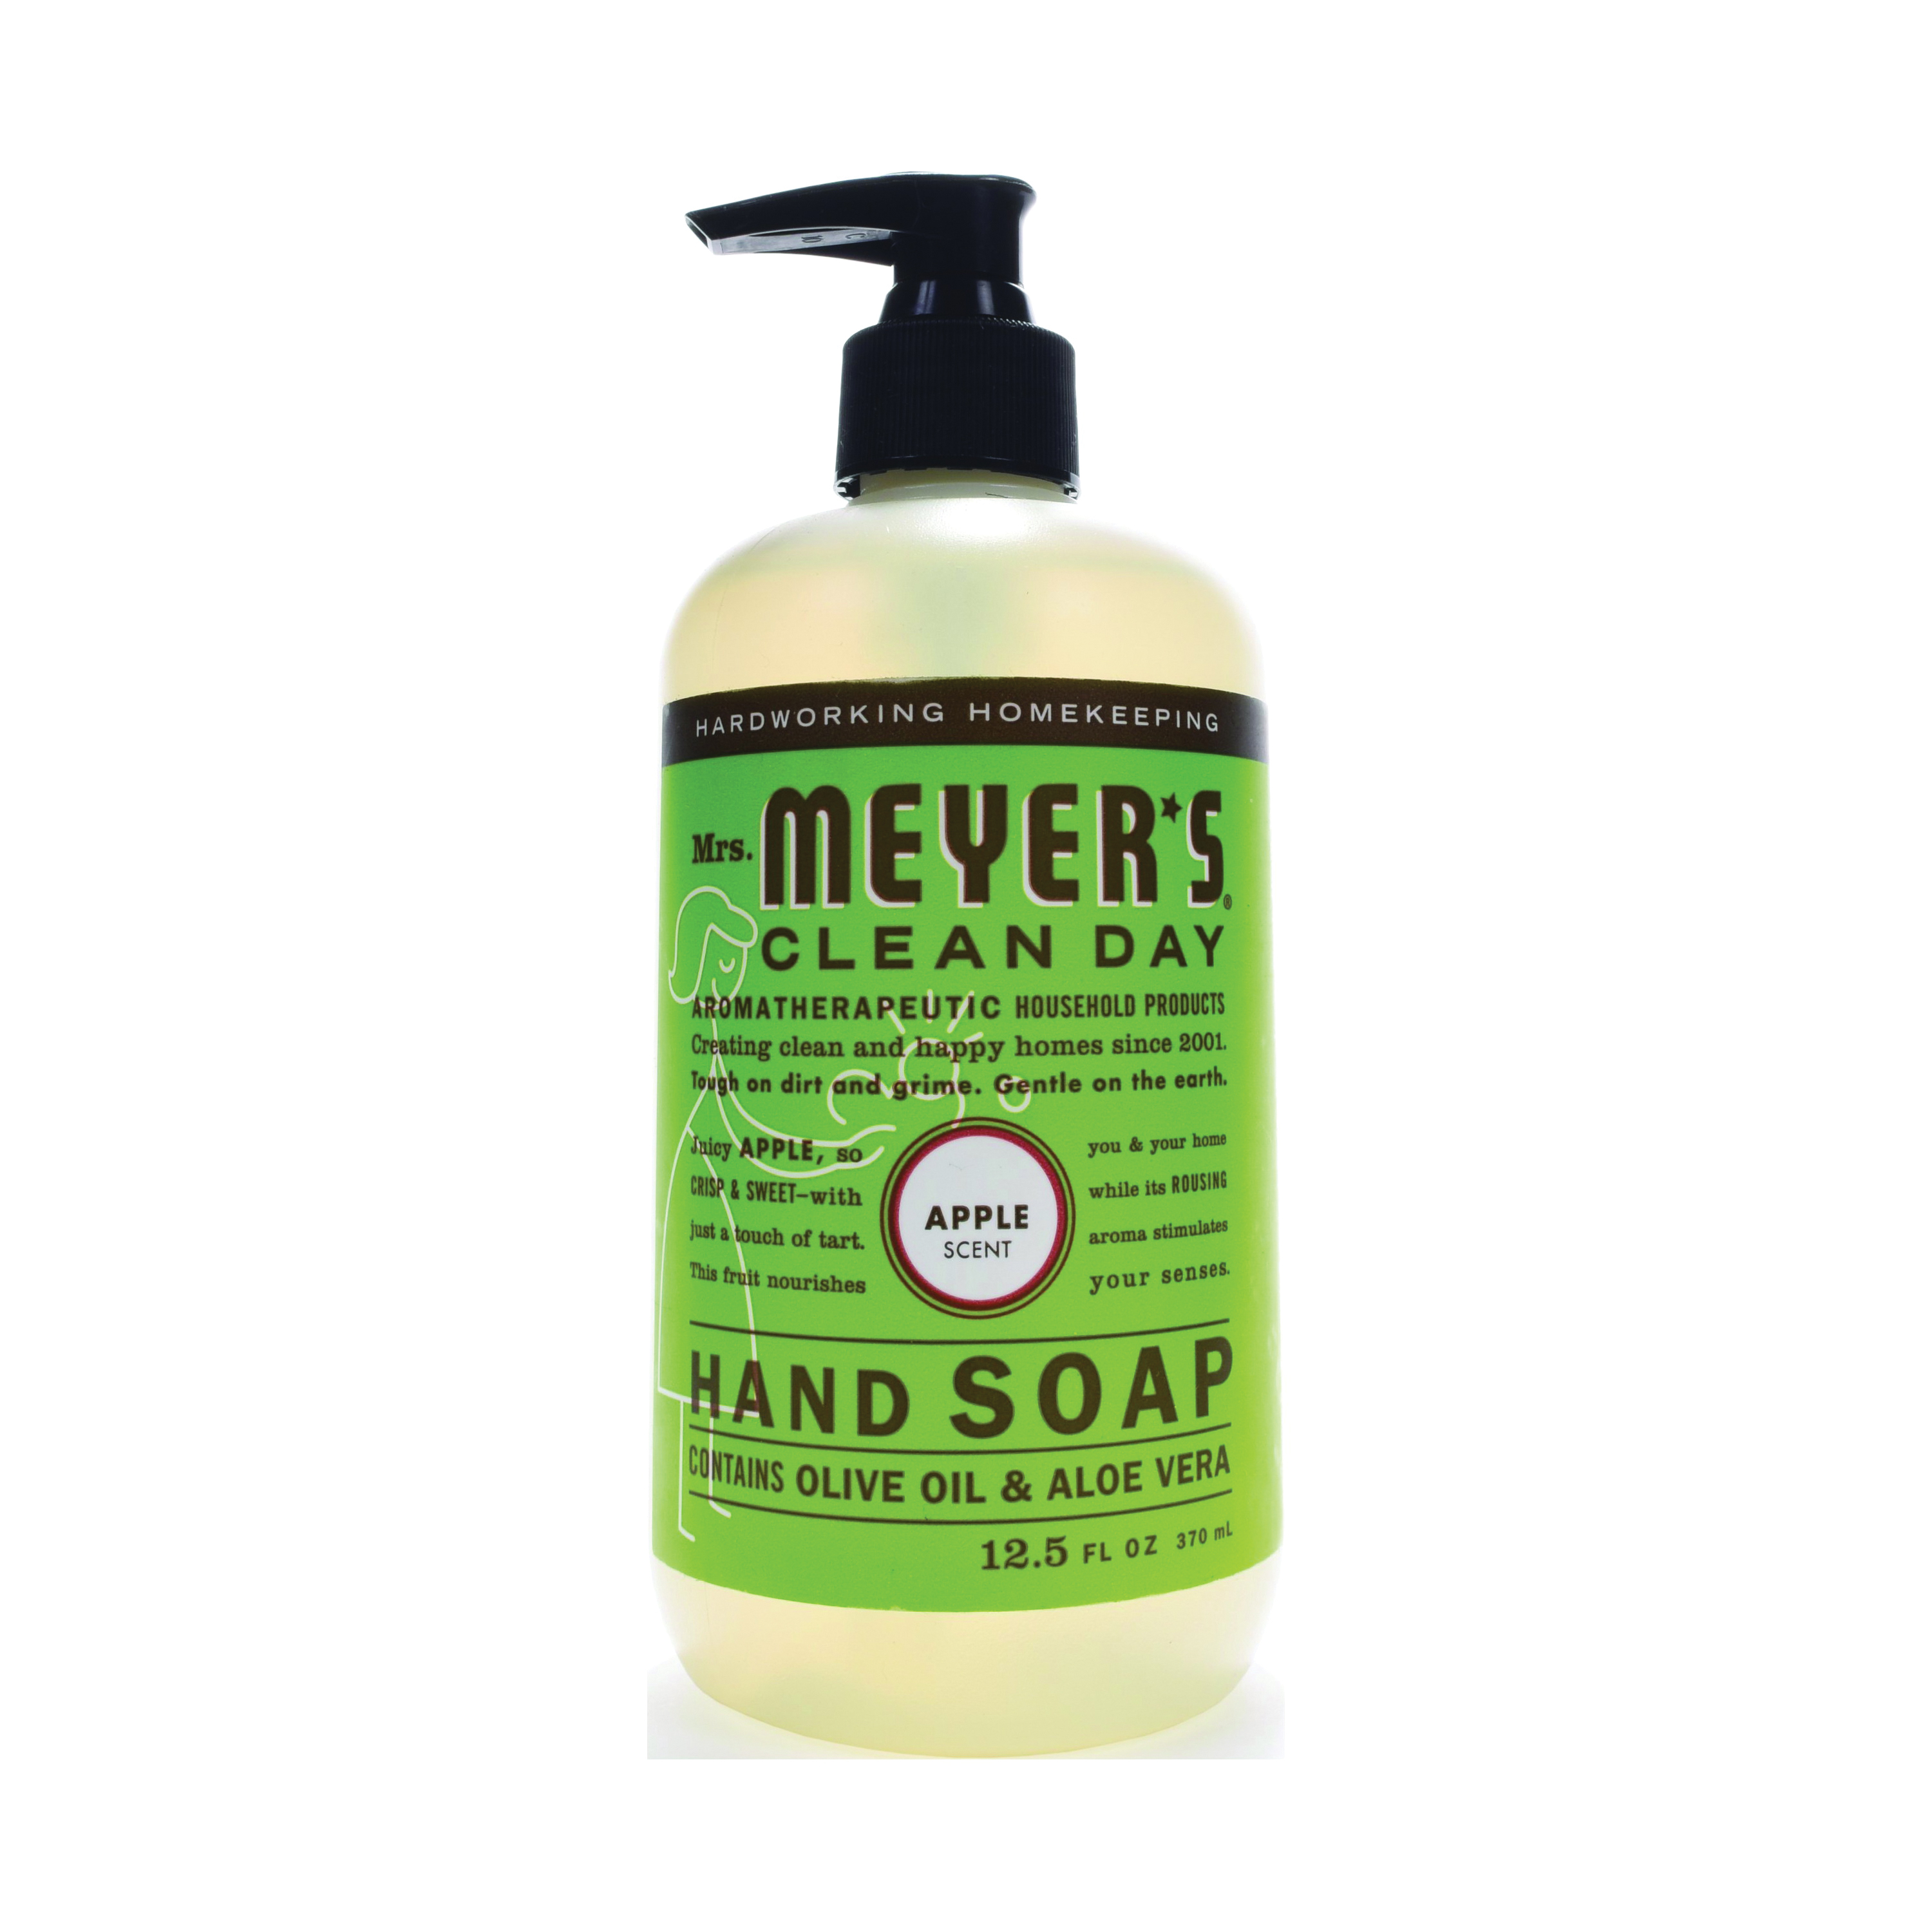 Picture of Mrs. Meyer's 17427 Hand Soap, Liquid, Colorless, Apple, 12.5 oz Package, Bottle